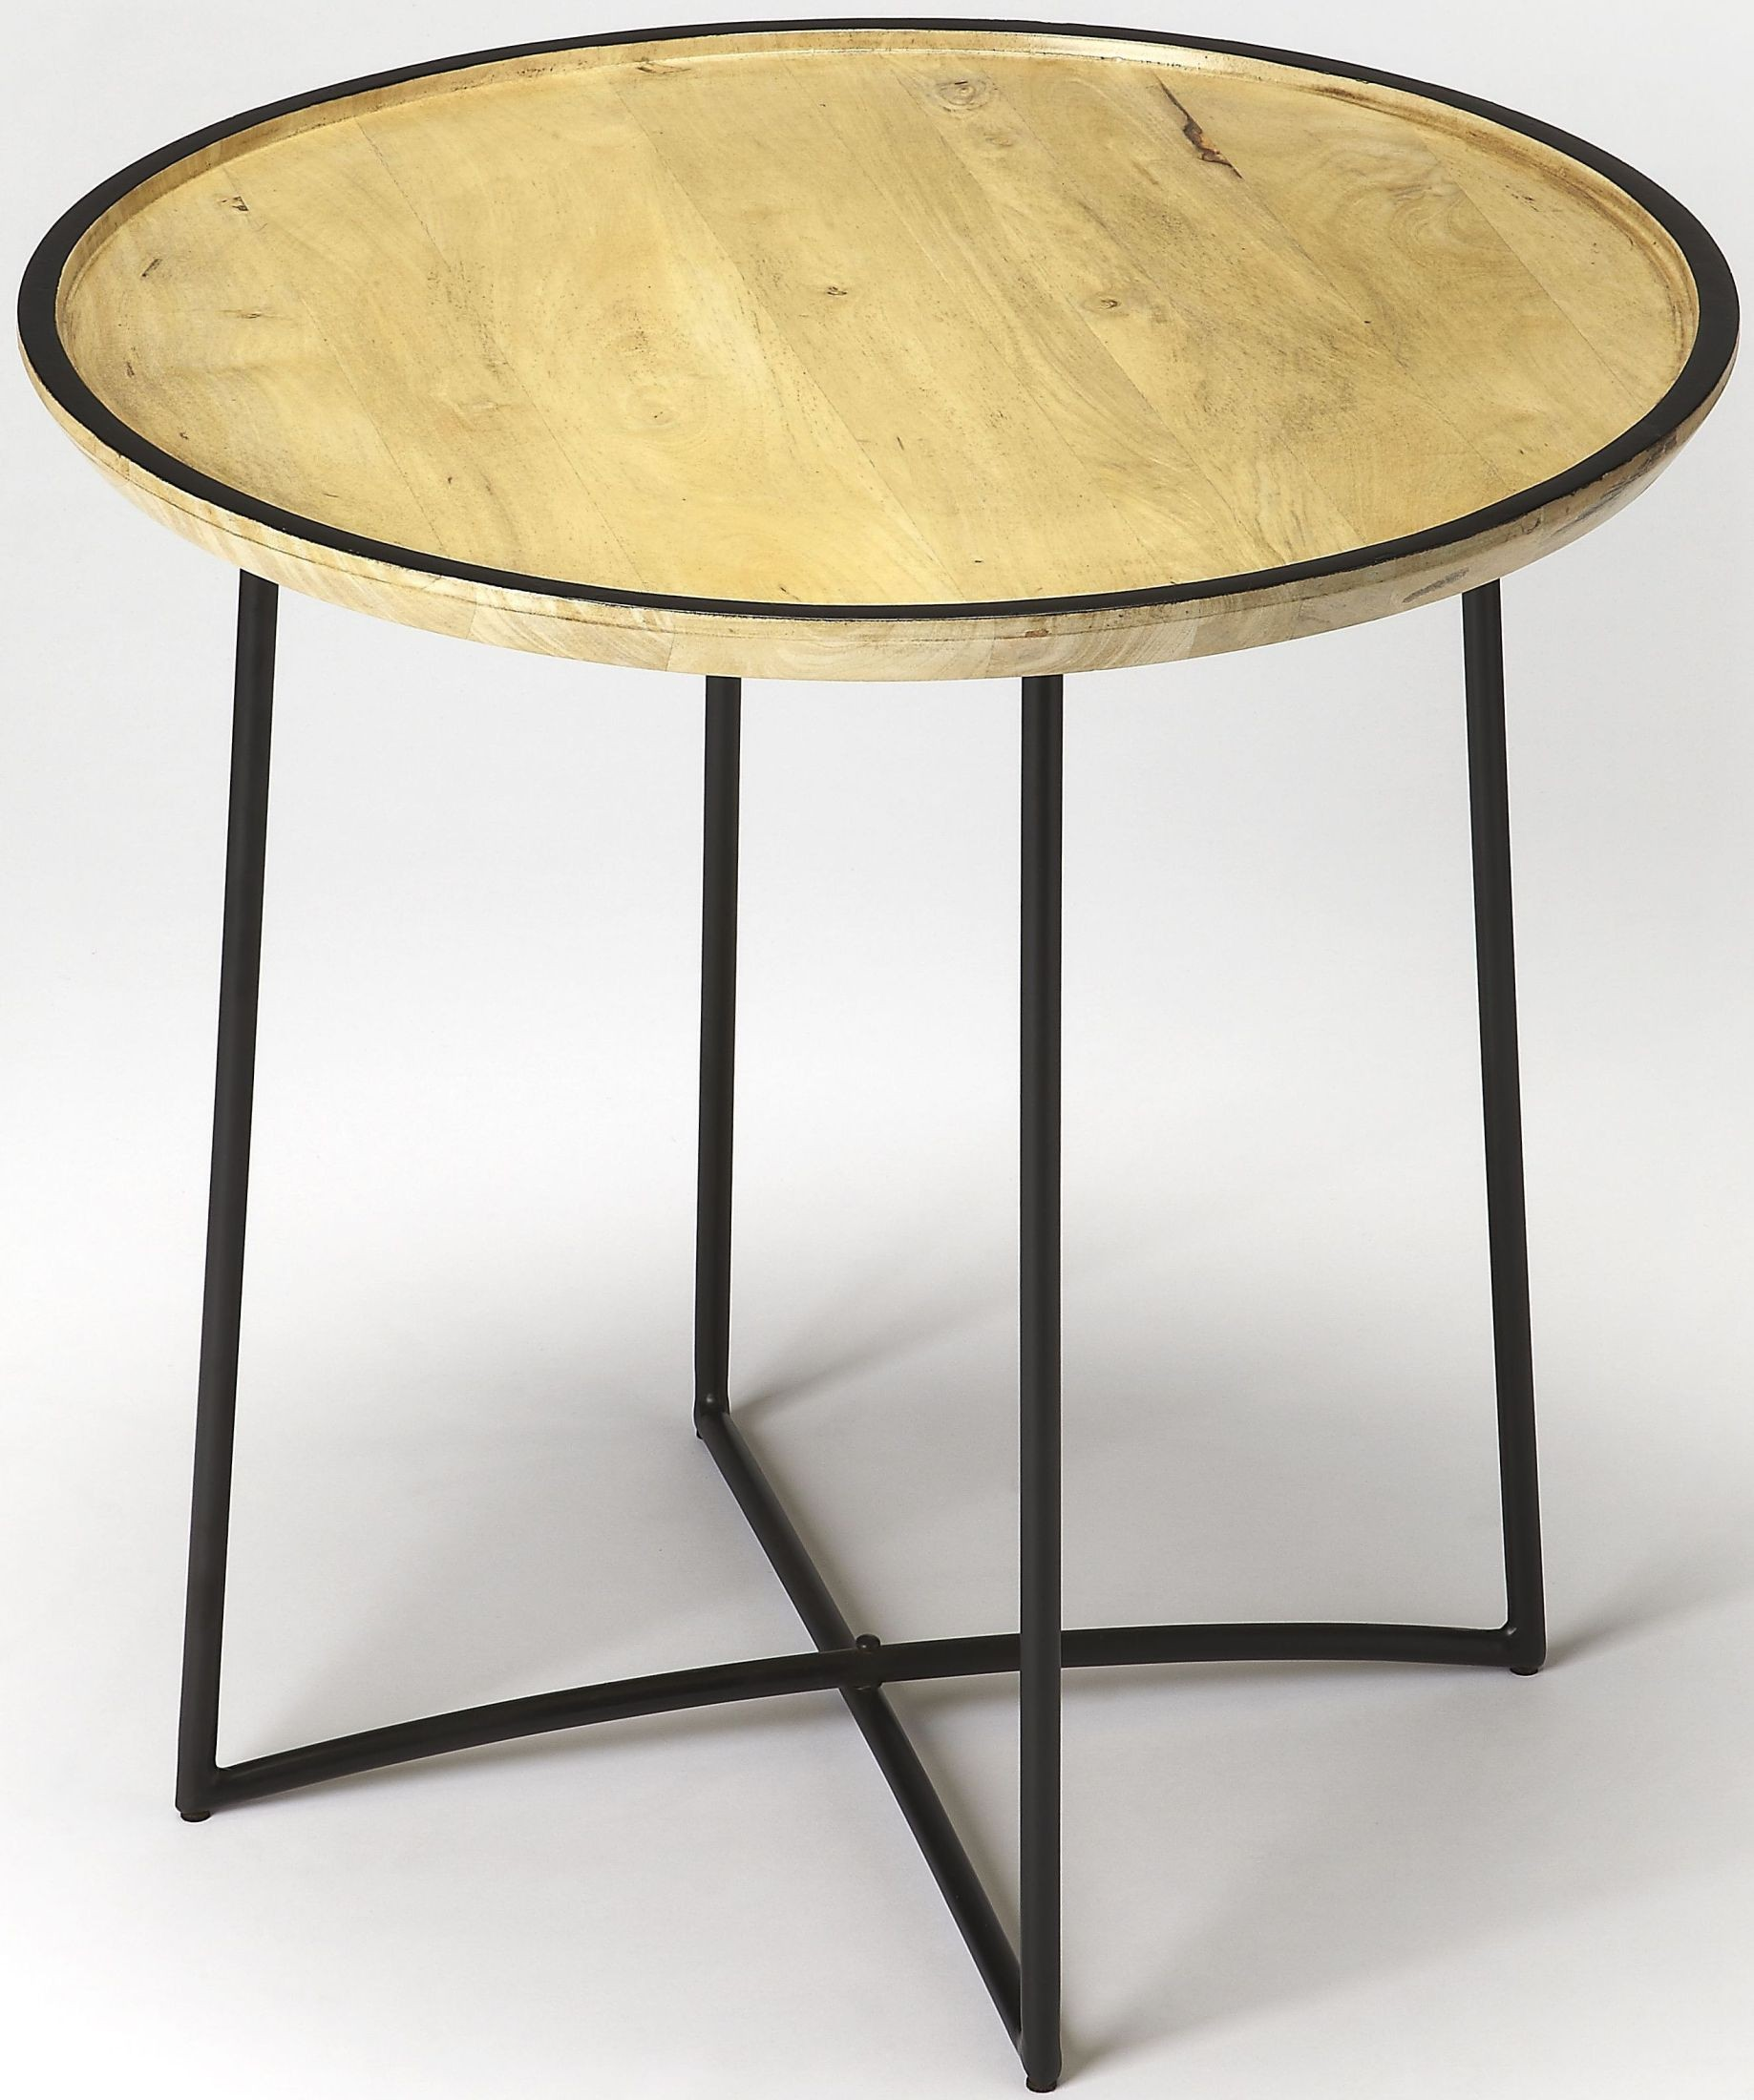 Butler loft brooke iron and wood accent table 3848140 butler for Iron and wood side table